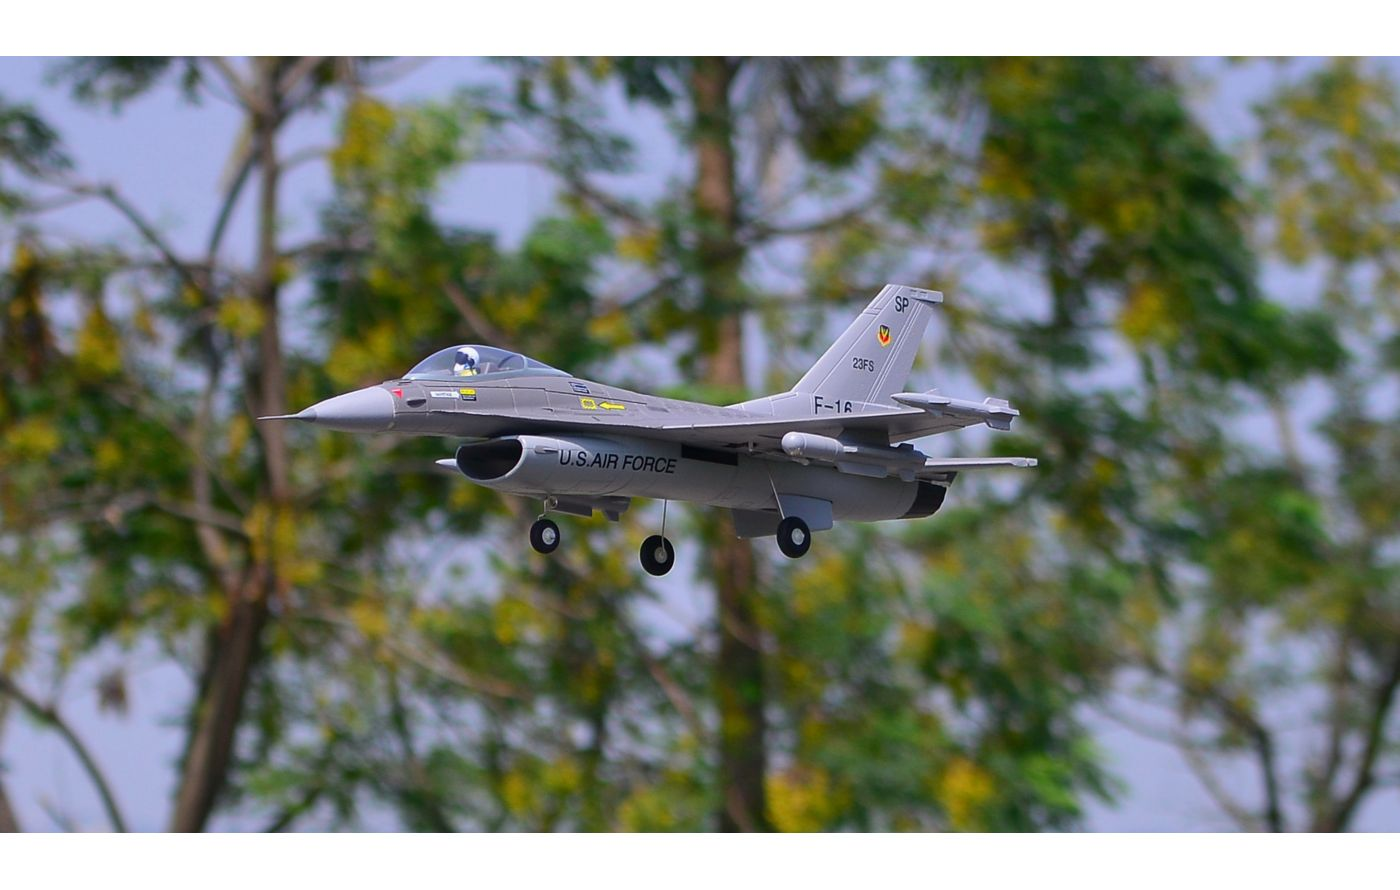 Image for F-16 V2 PNP, 64mm Fan from Force RC